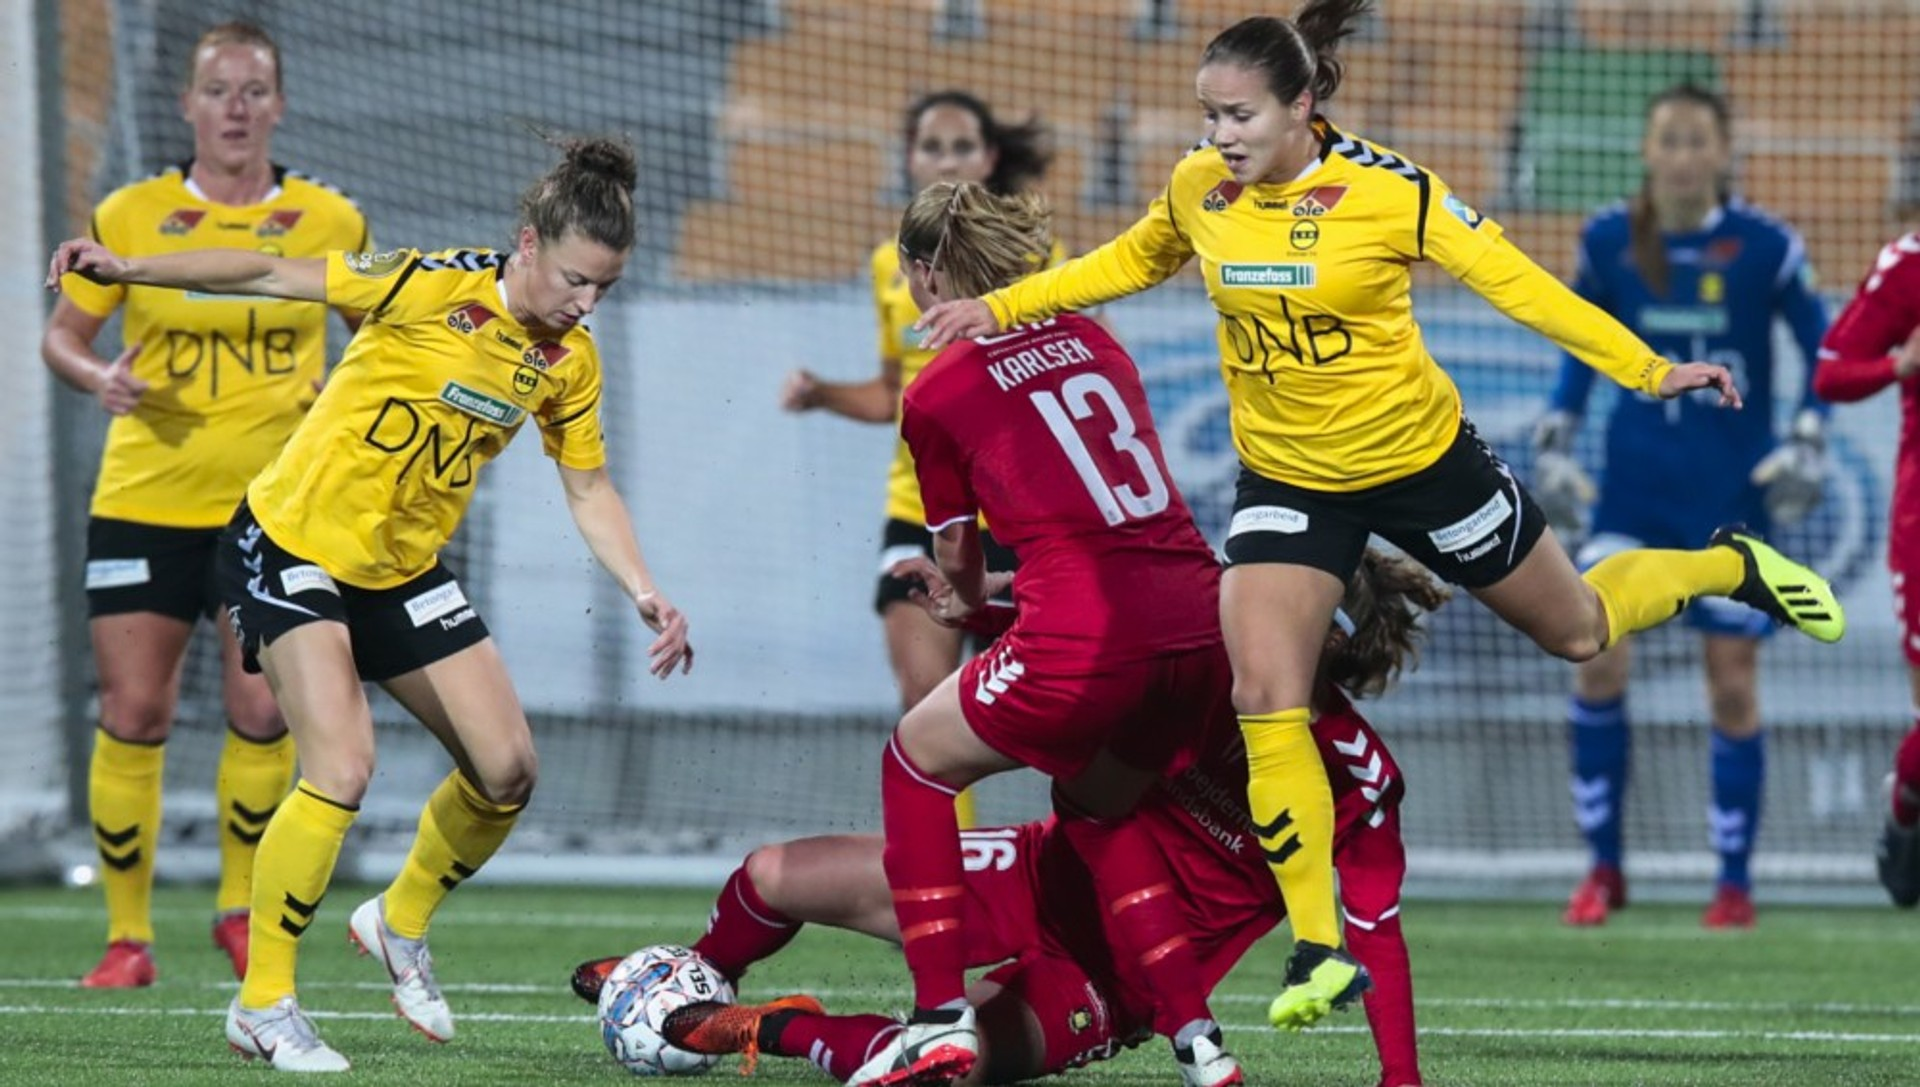 NFF A LAGS ANSVARLIG